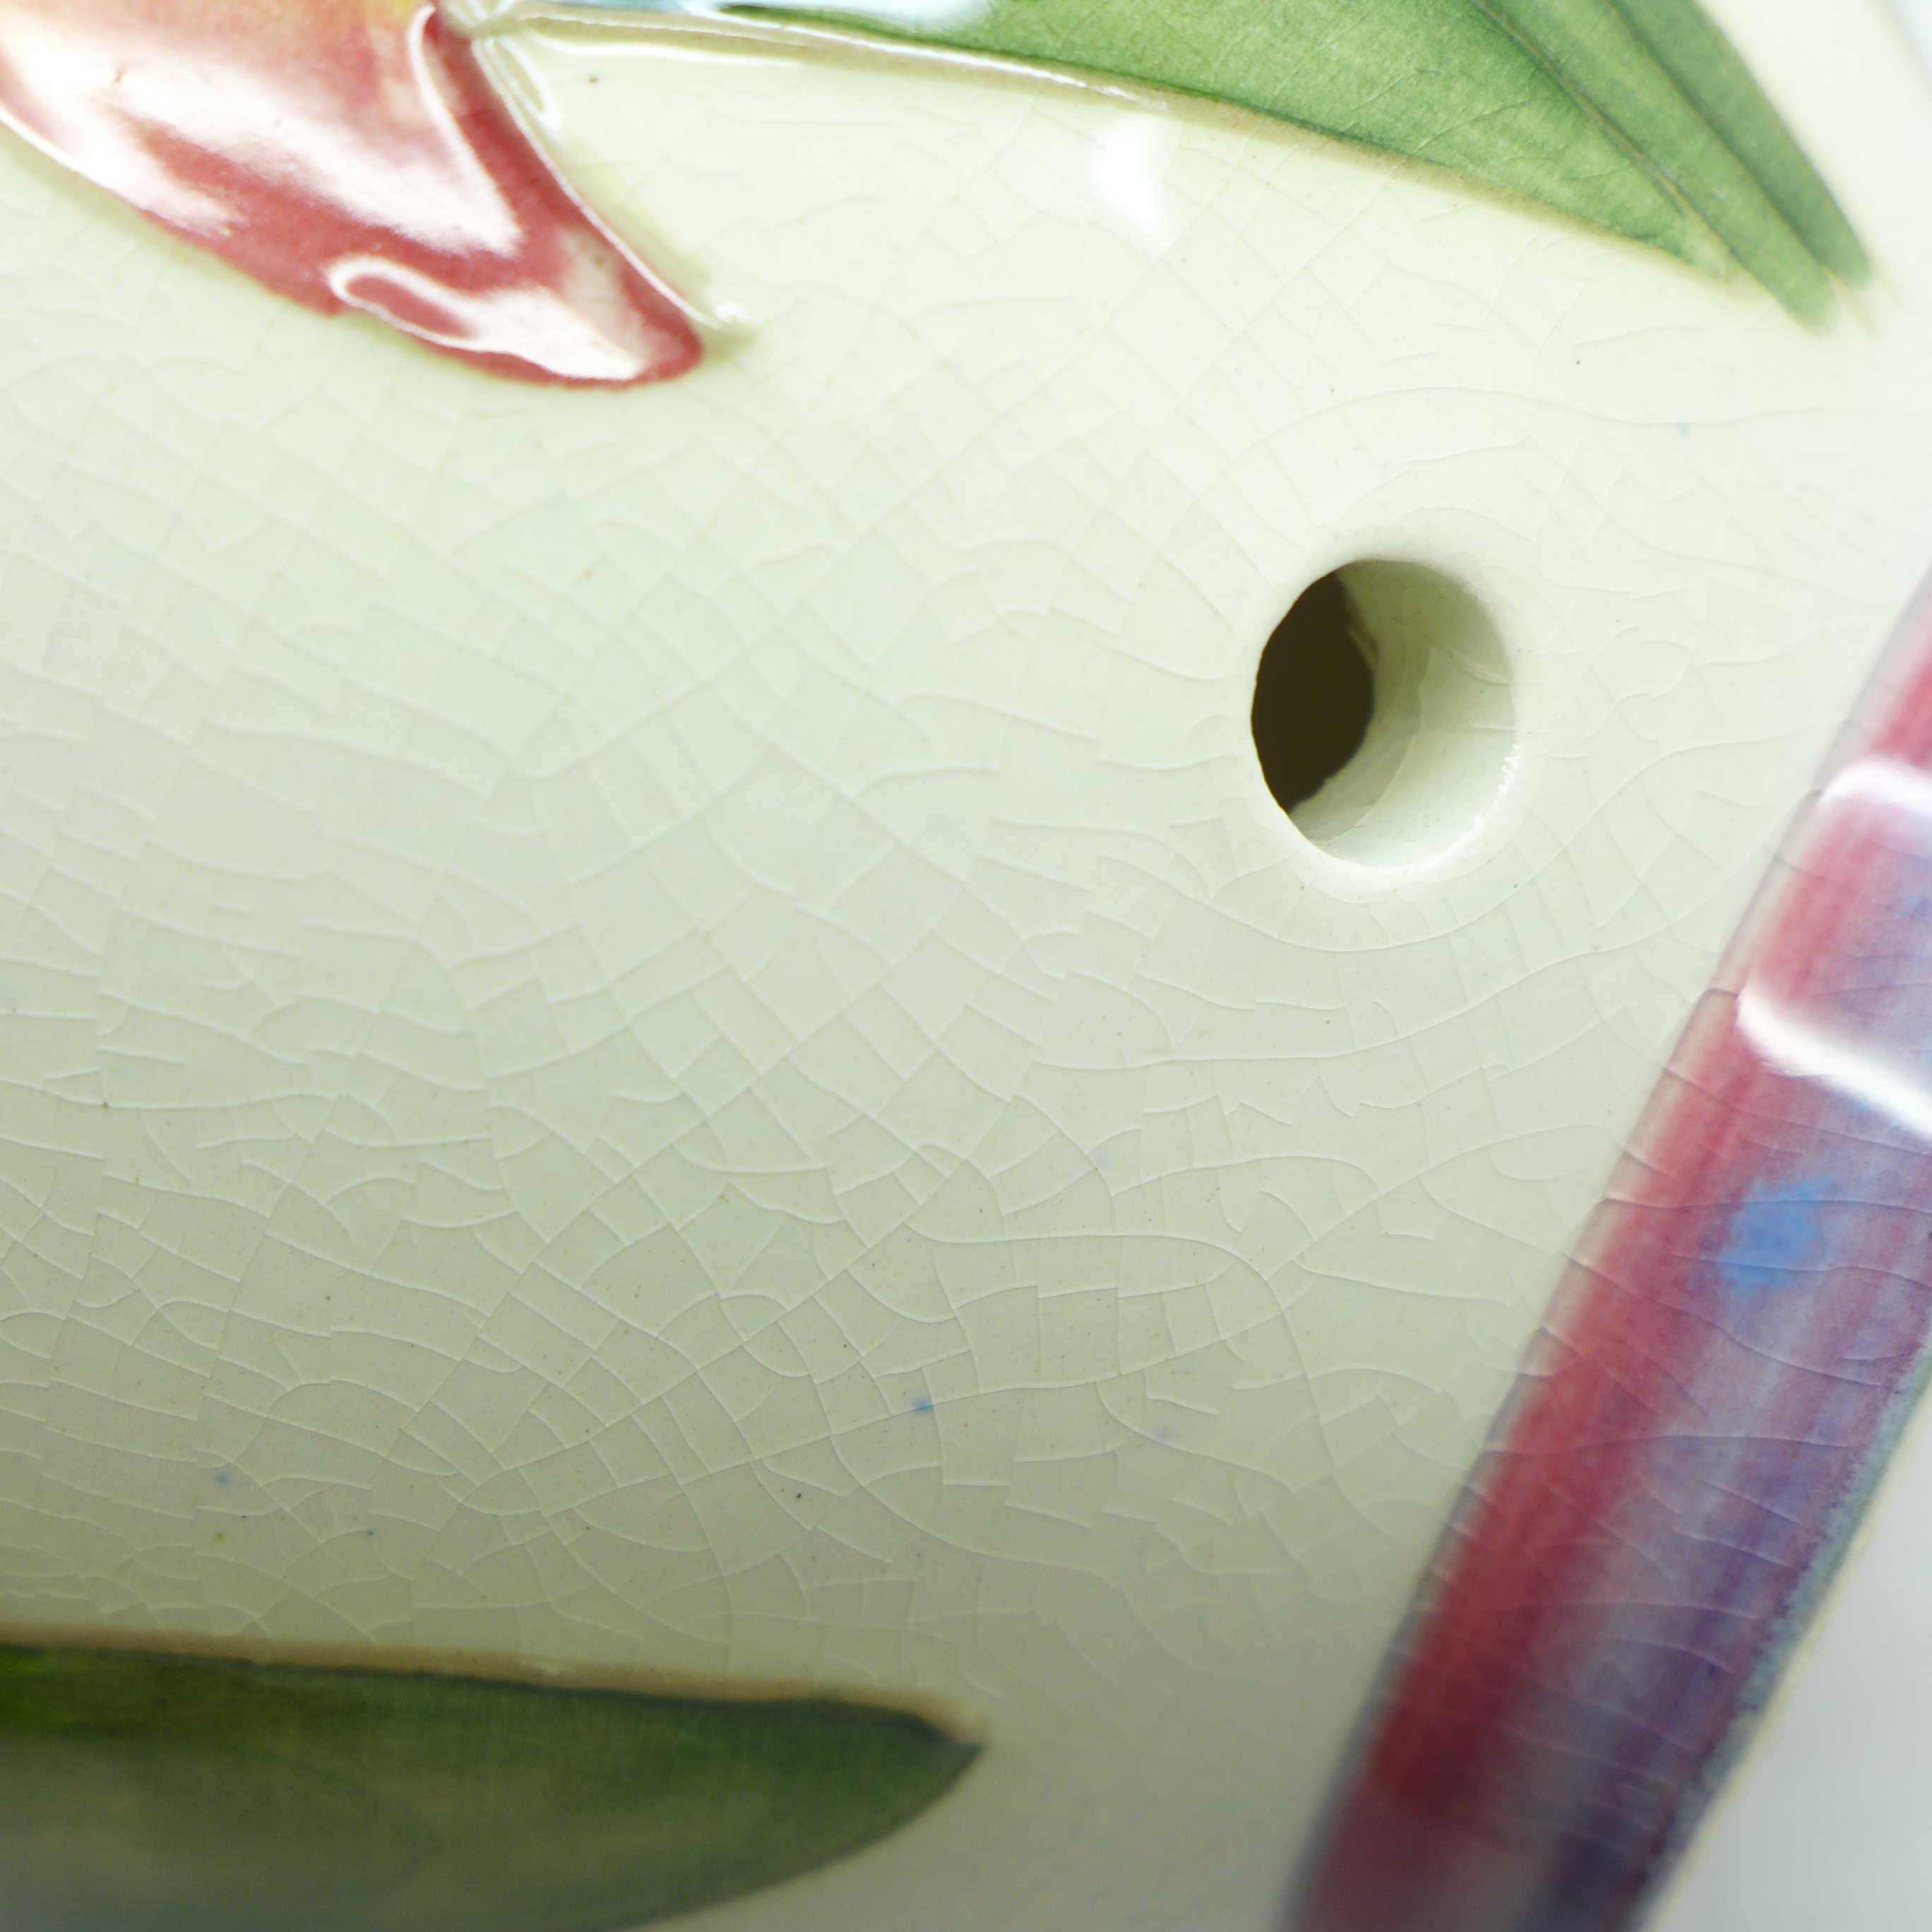 A Moorcroft orchid table lamp base, 17.5cm - Image 6 of 7